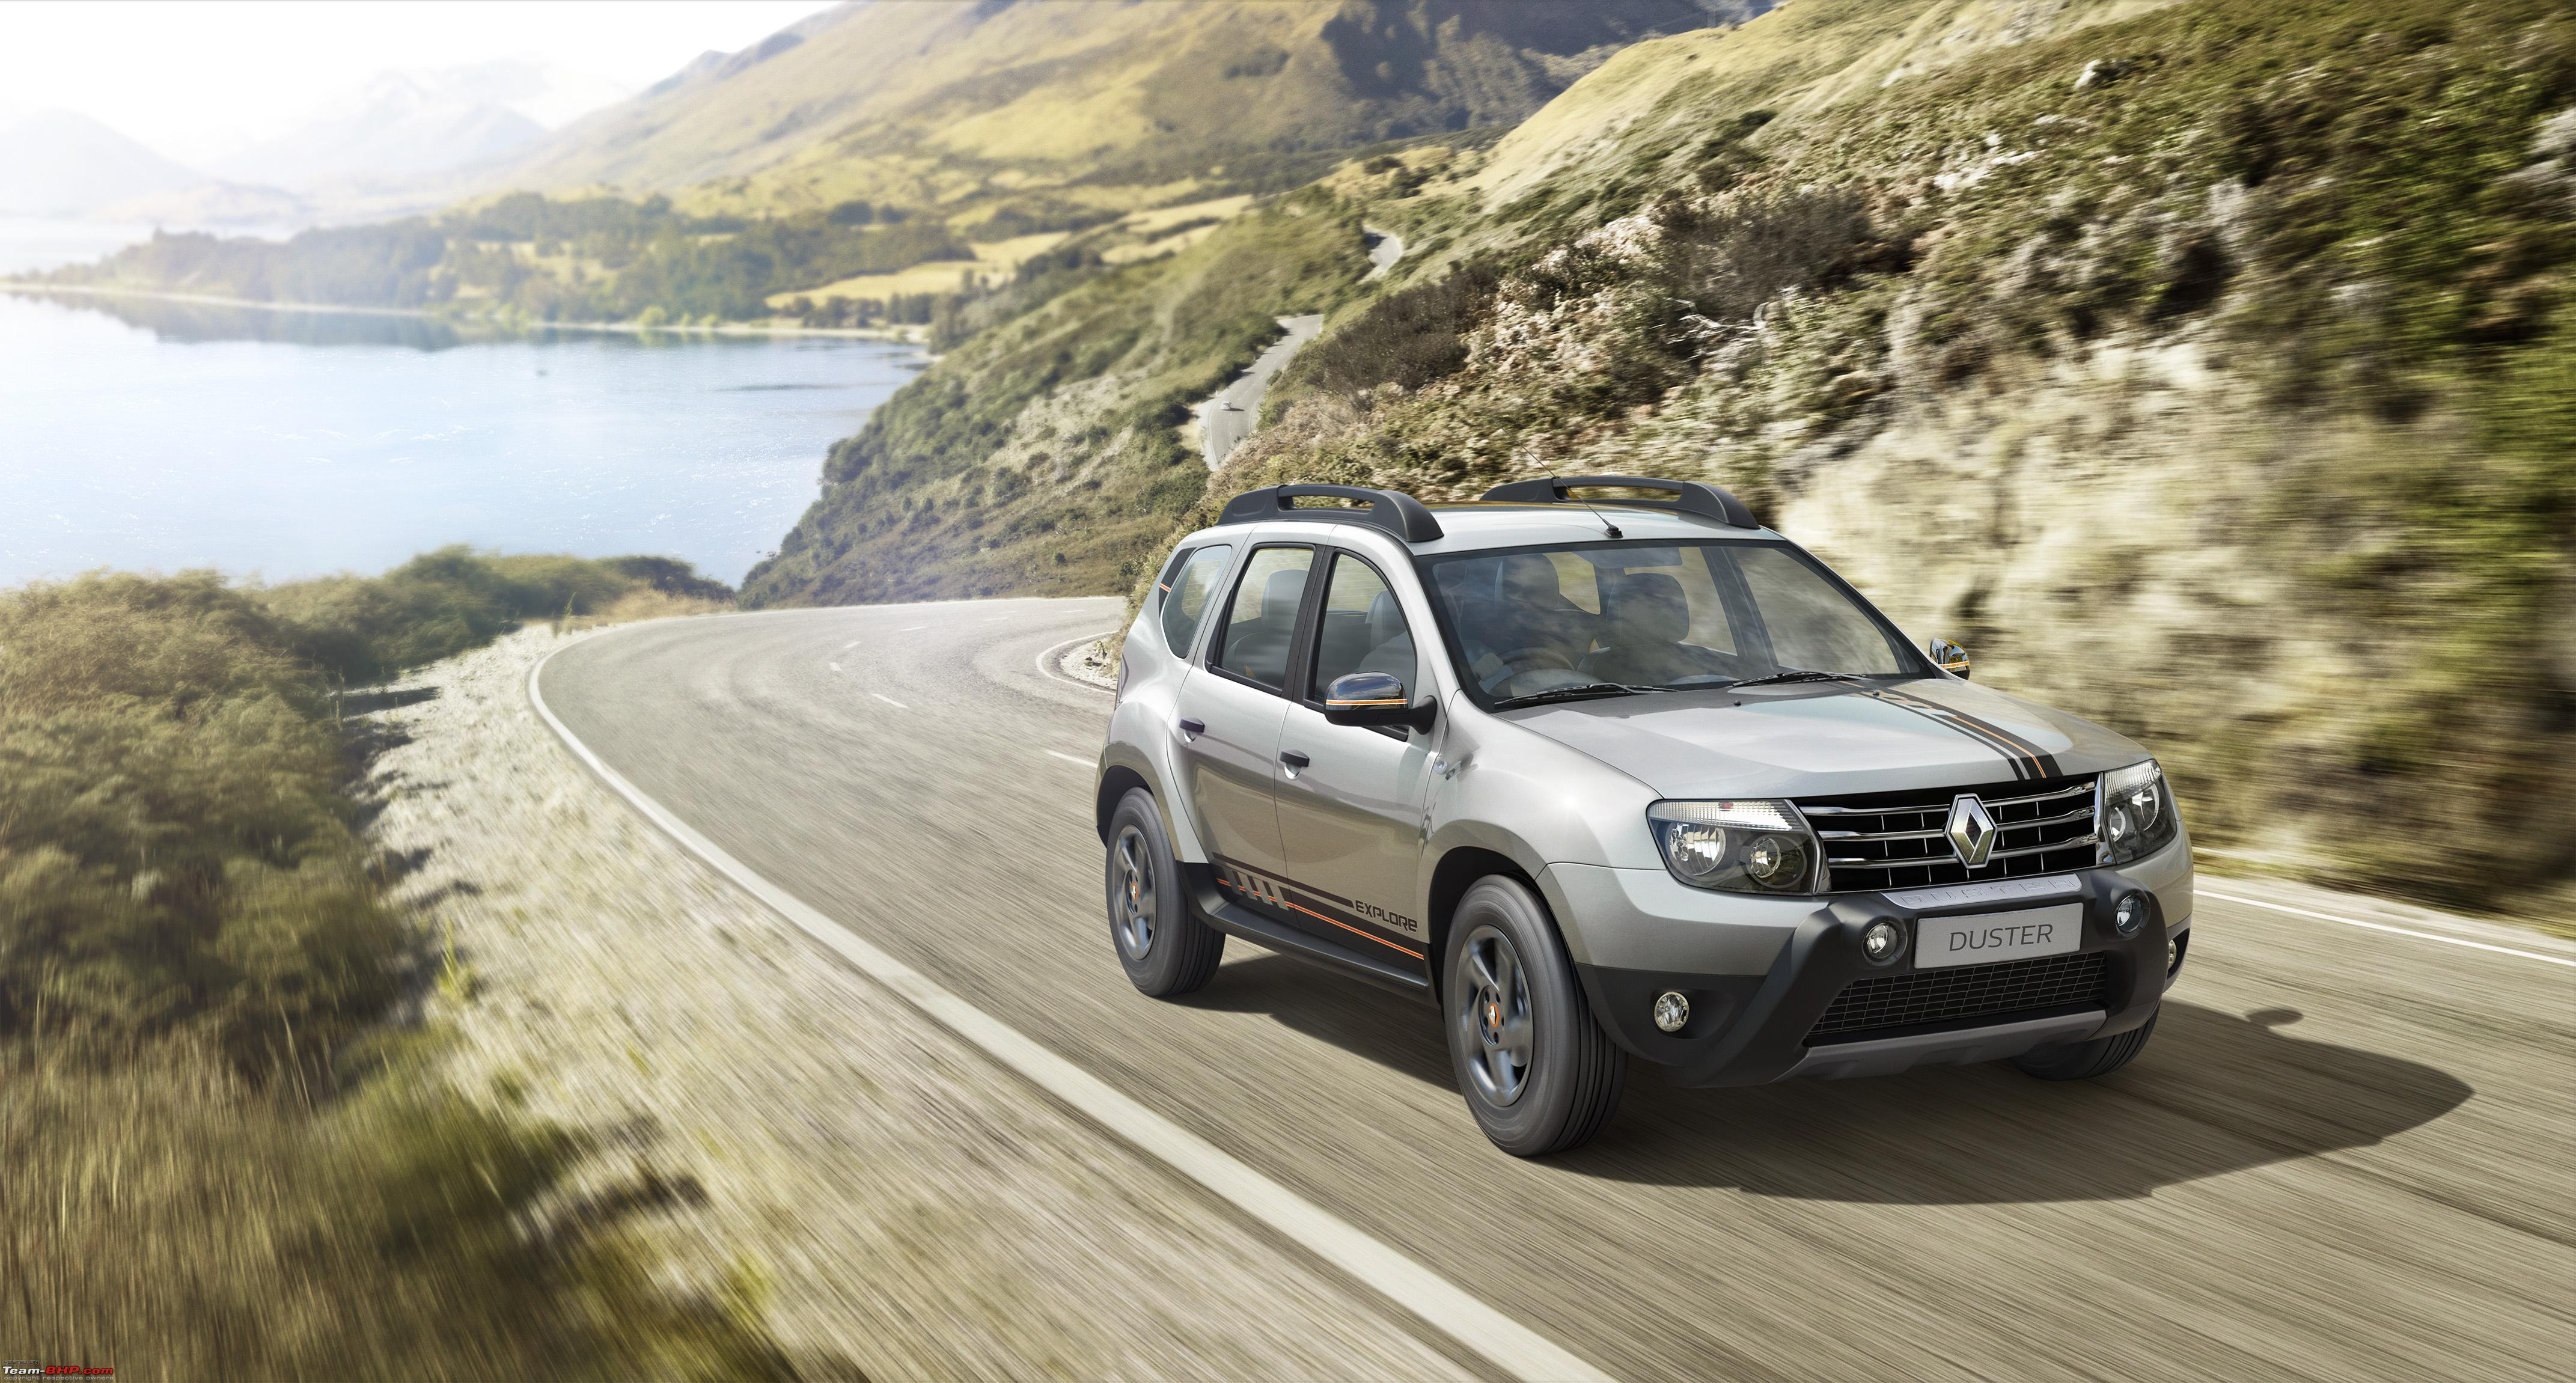 Renault Duster Receives A Futuristic Front From DC Design